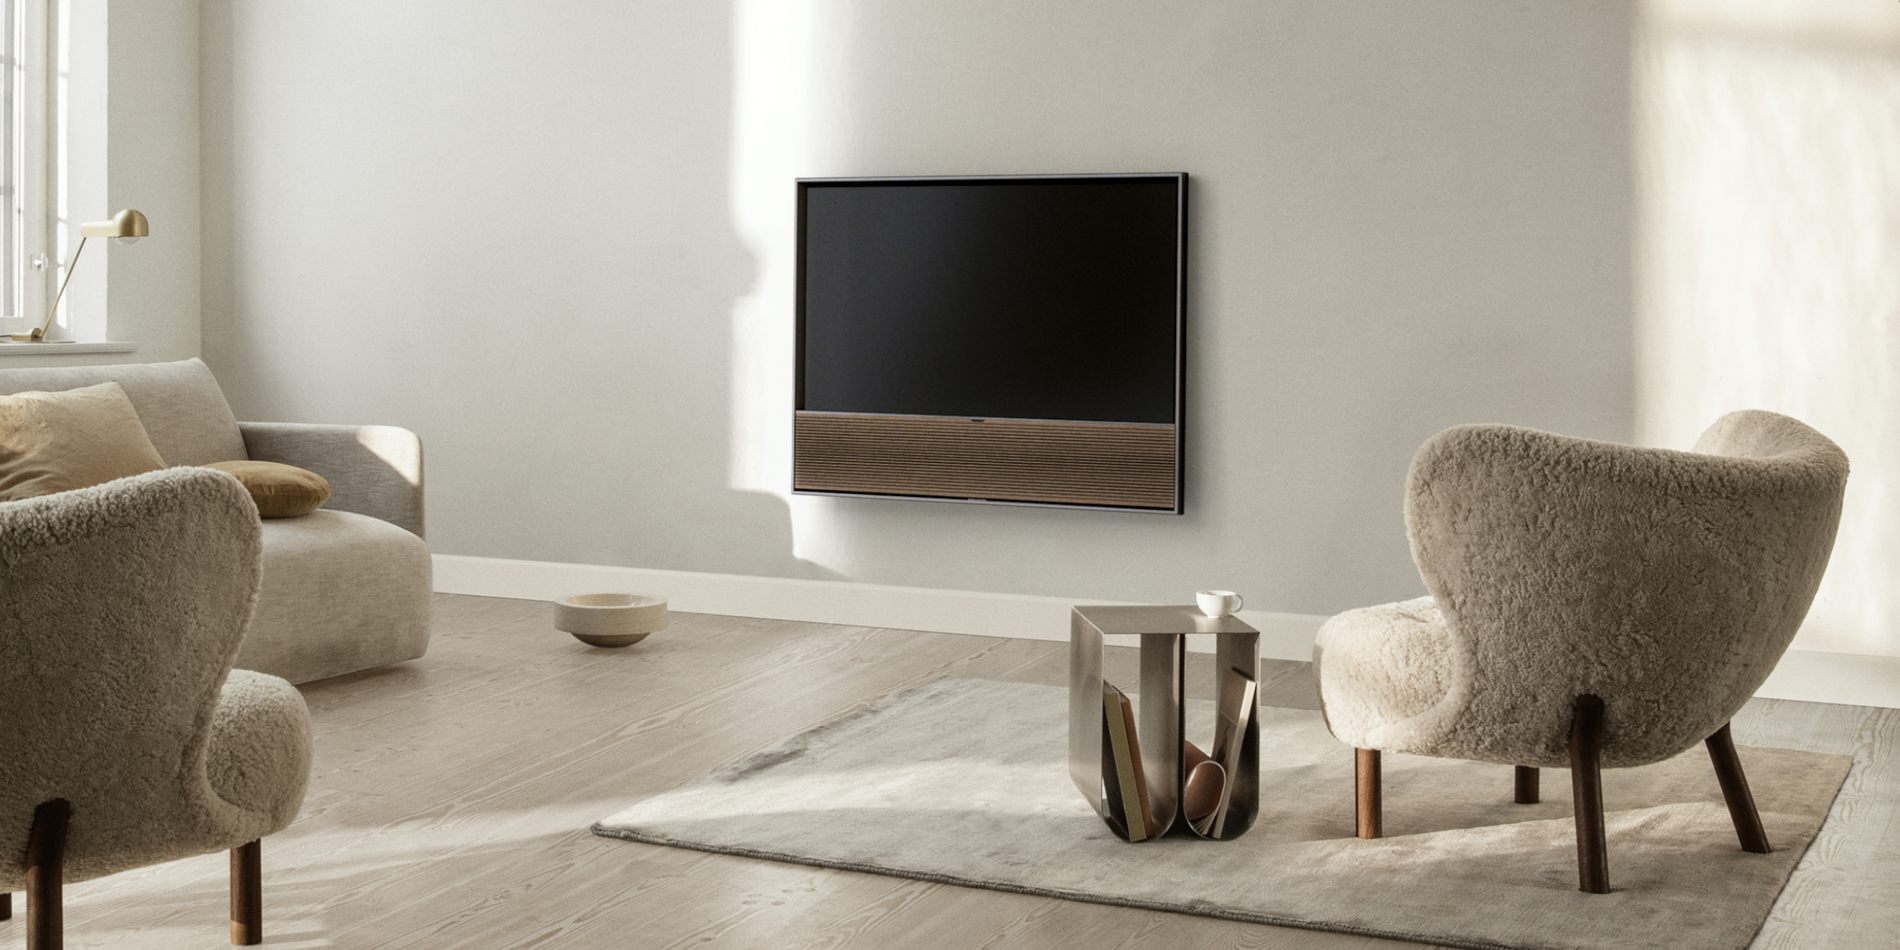 All-in-one OLED TV 48